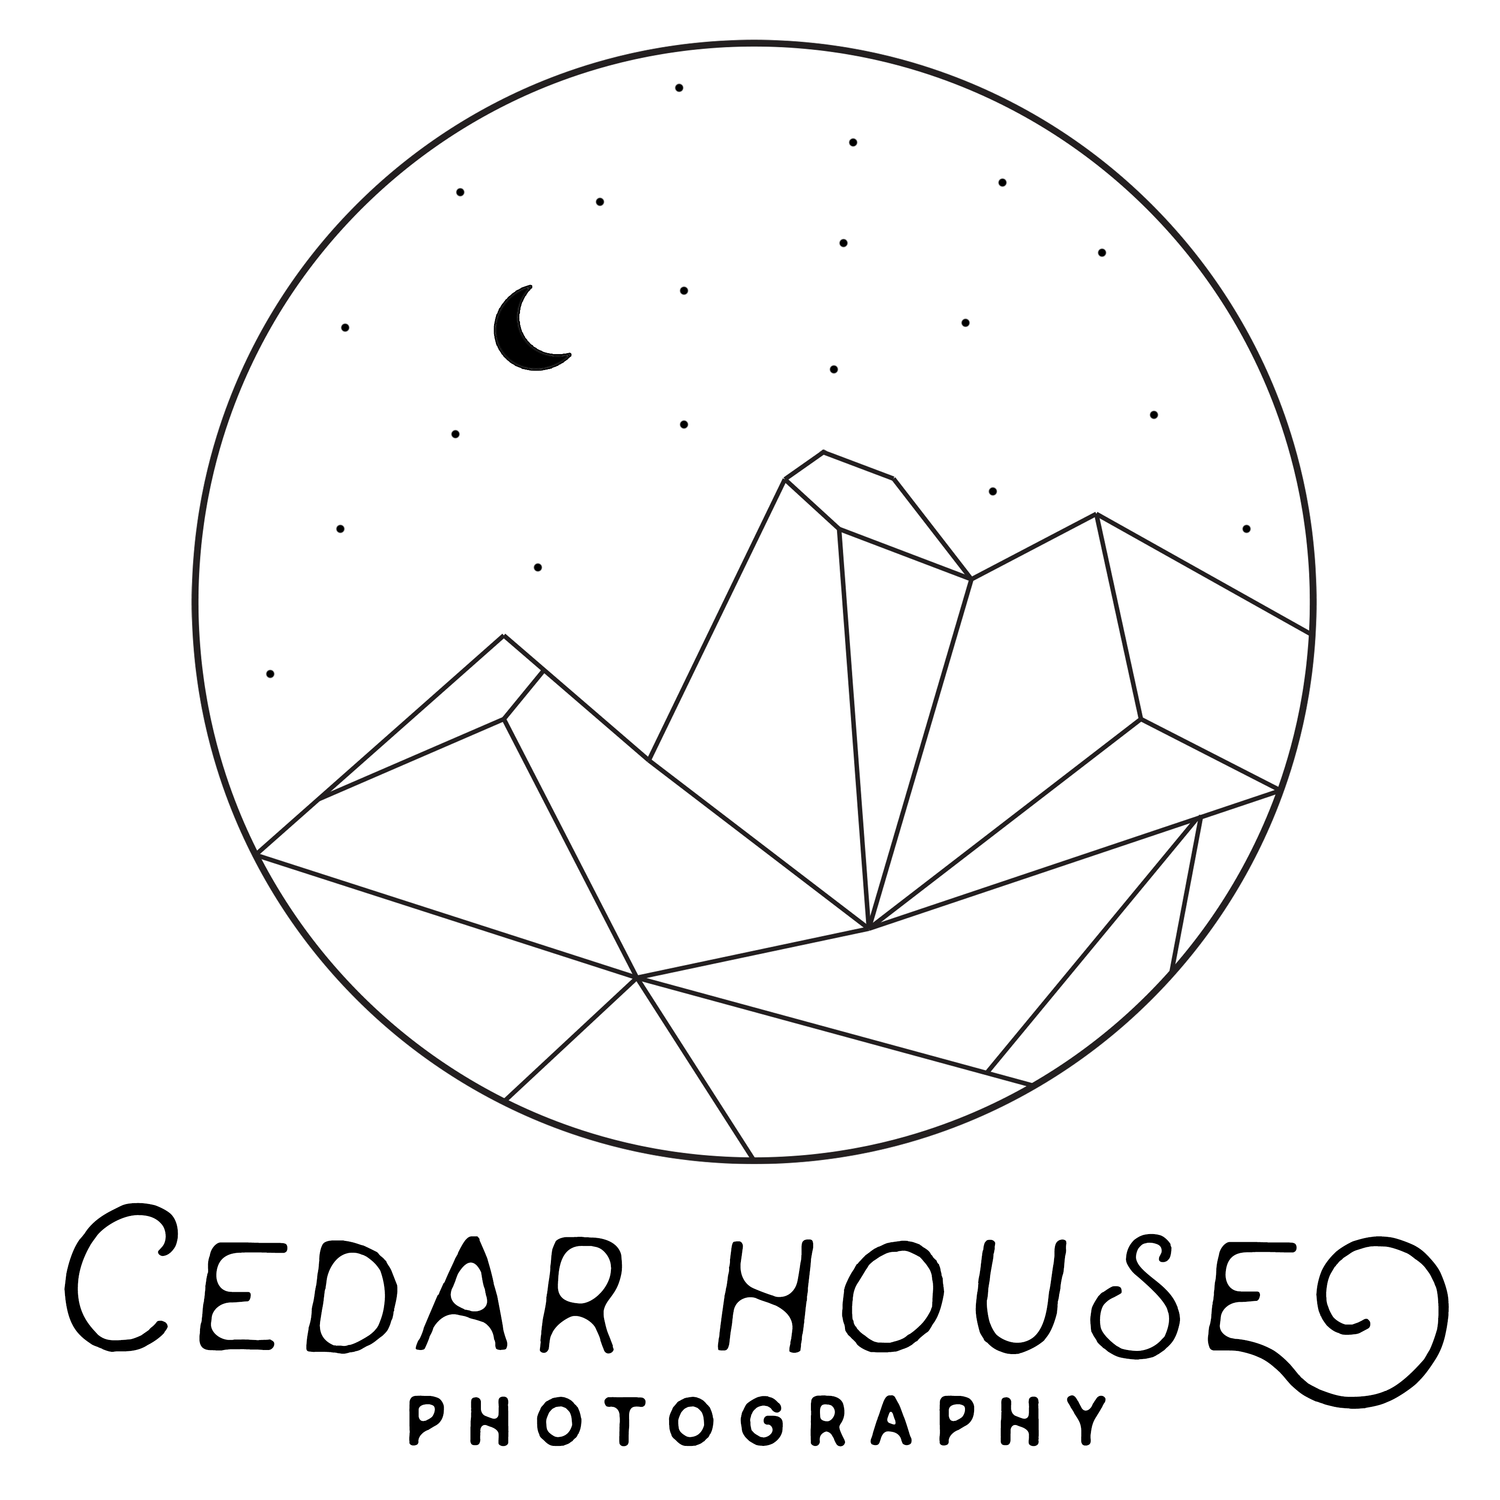 Cedar House Photography